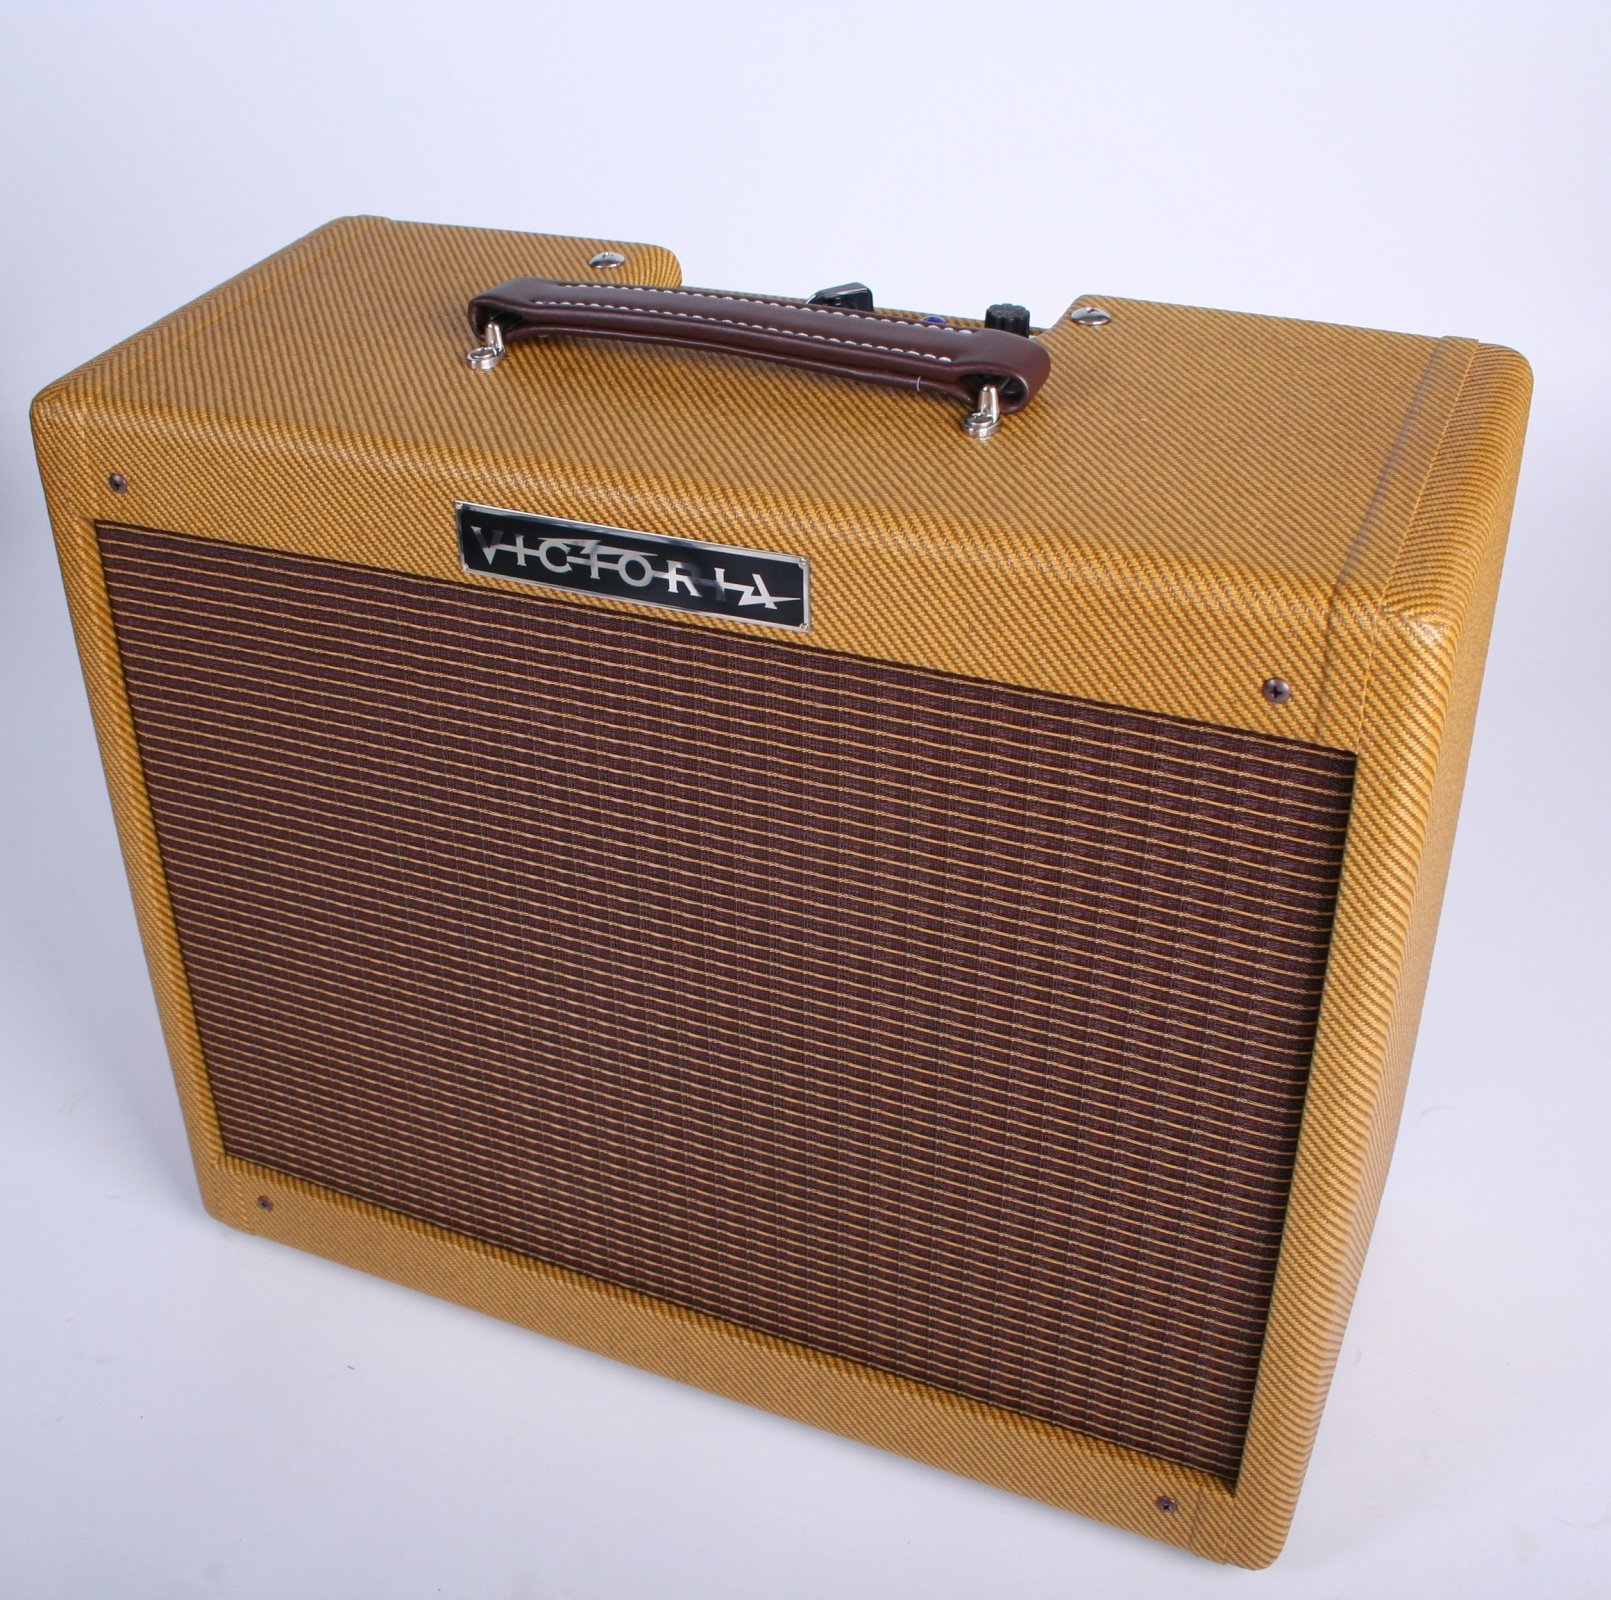 Victoria Amplifier Co 5112 5F1 Style